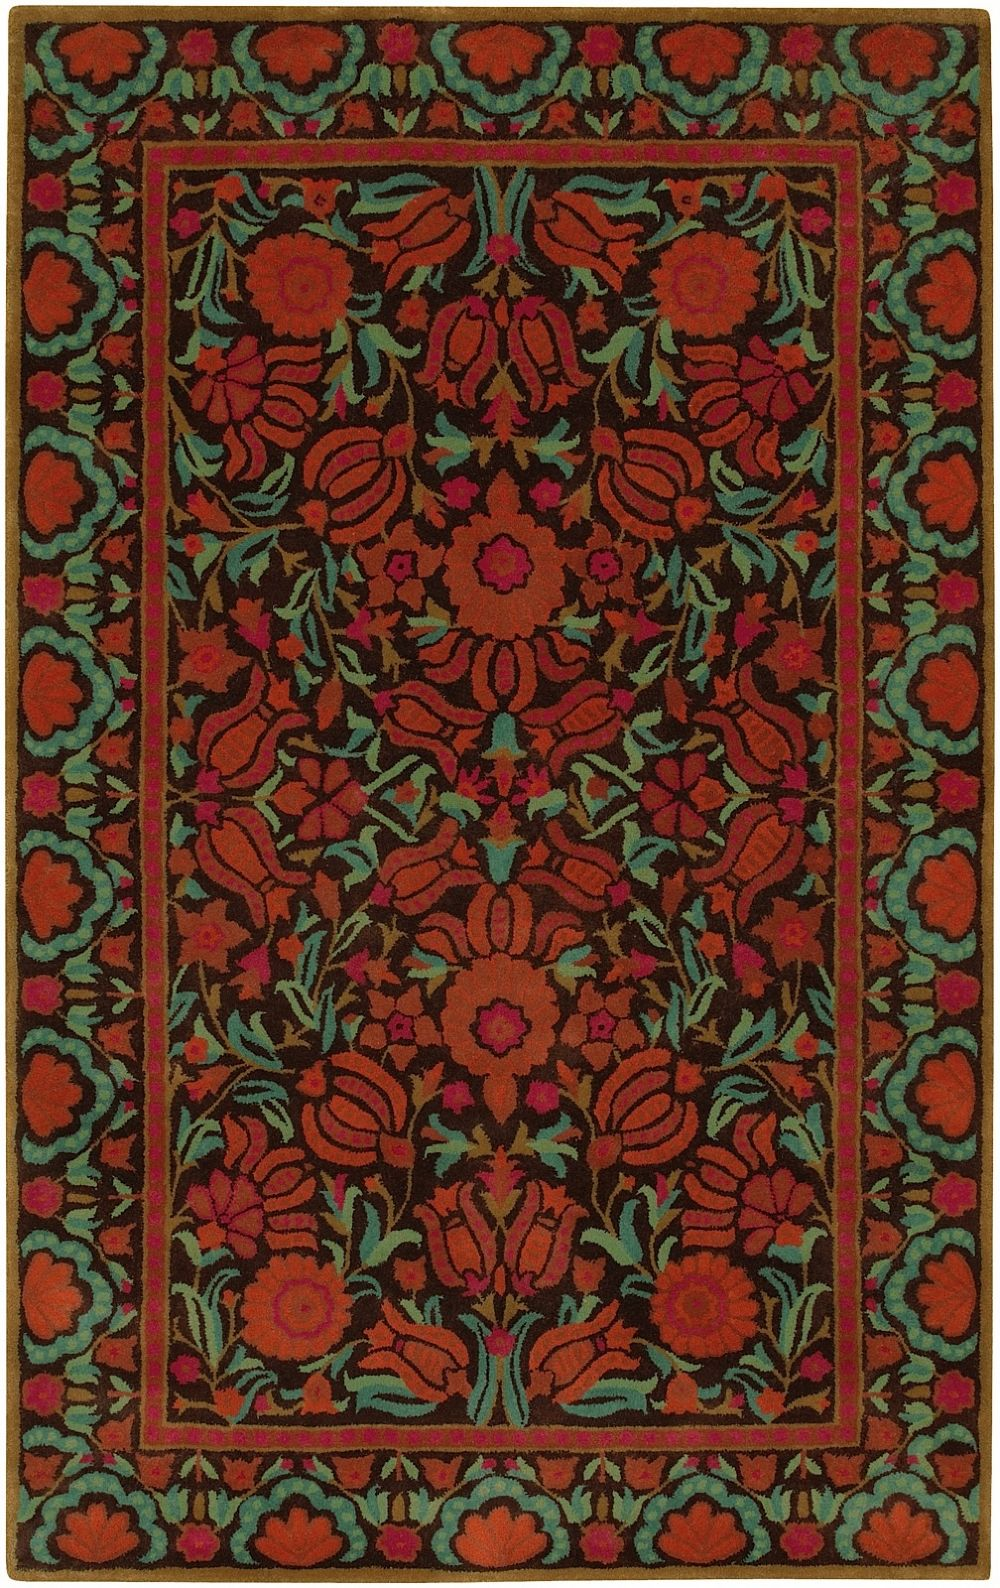 surya dazzle country & floral area rug collection